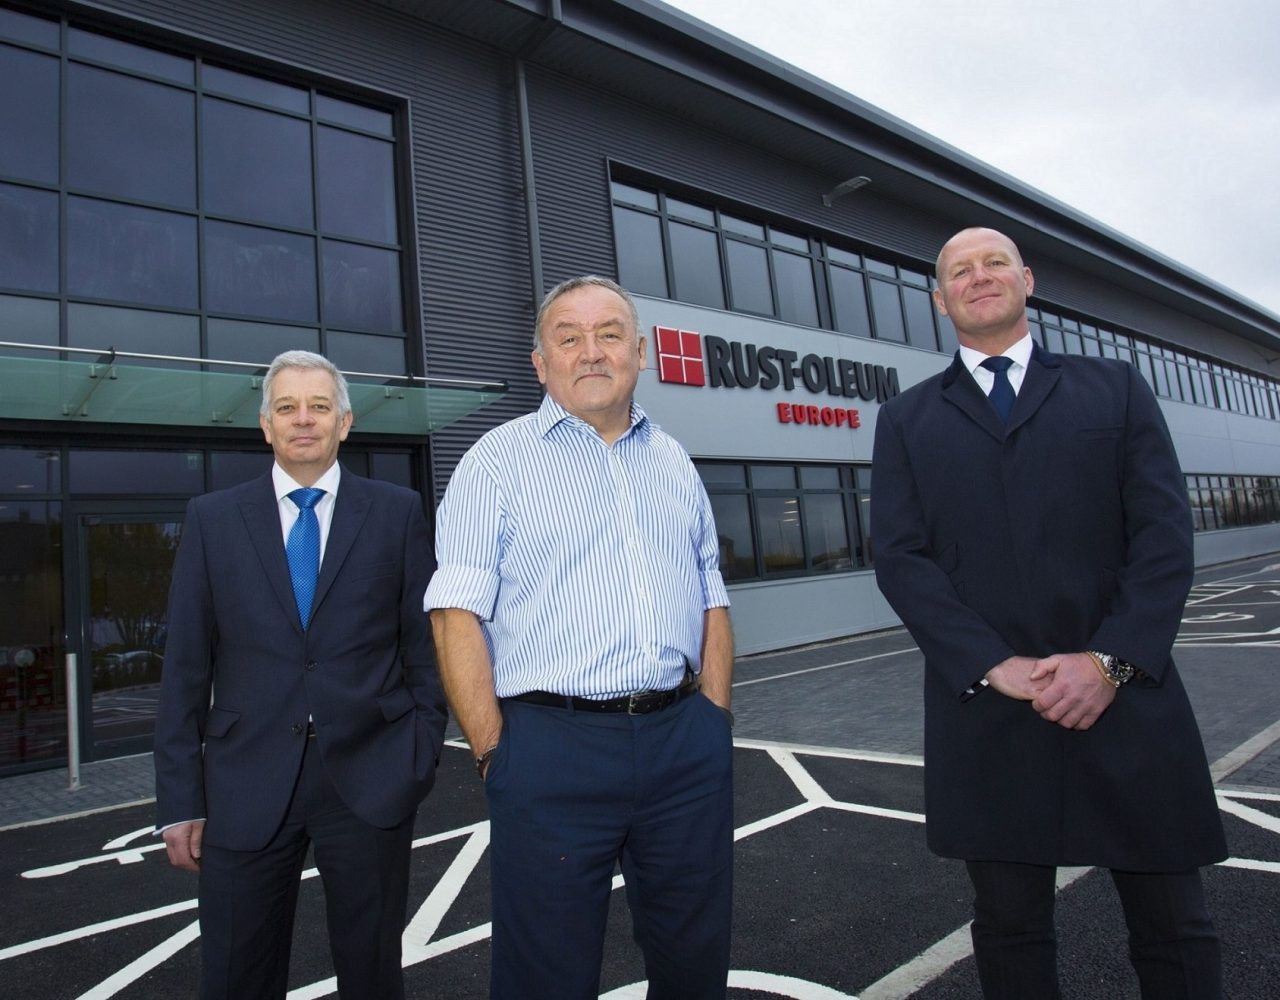 Coatings firm expands operations with new storage and distribution base